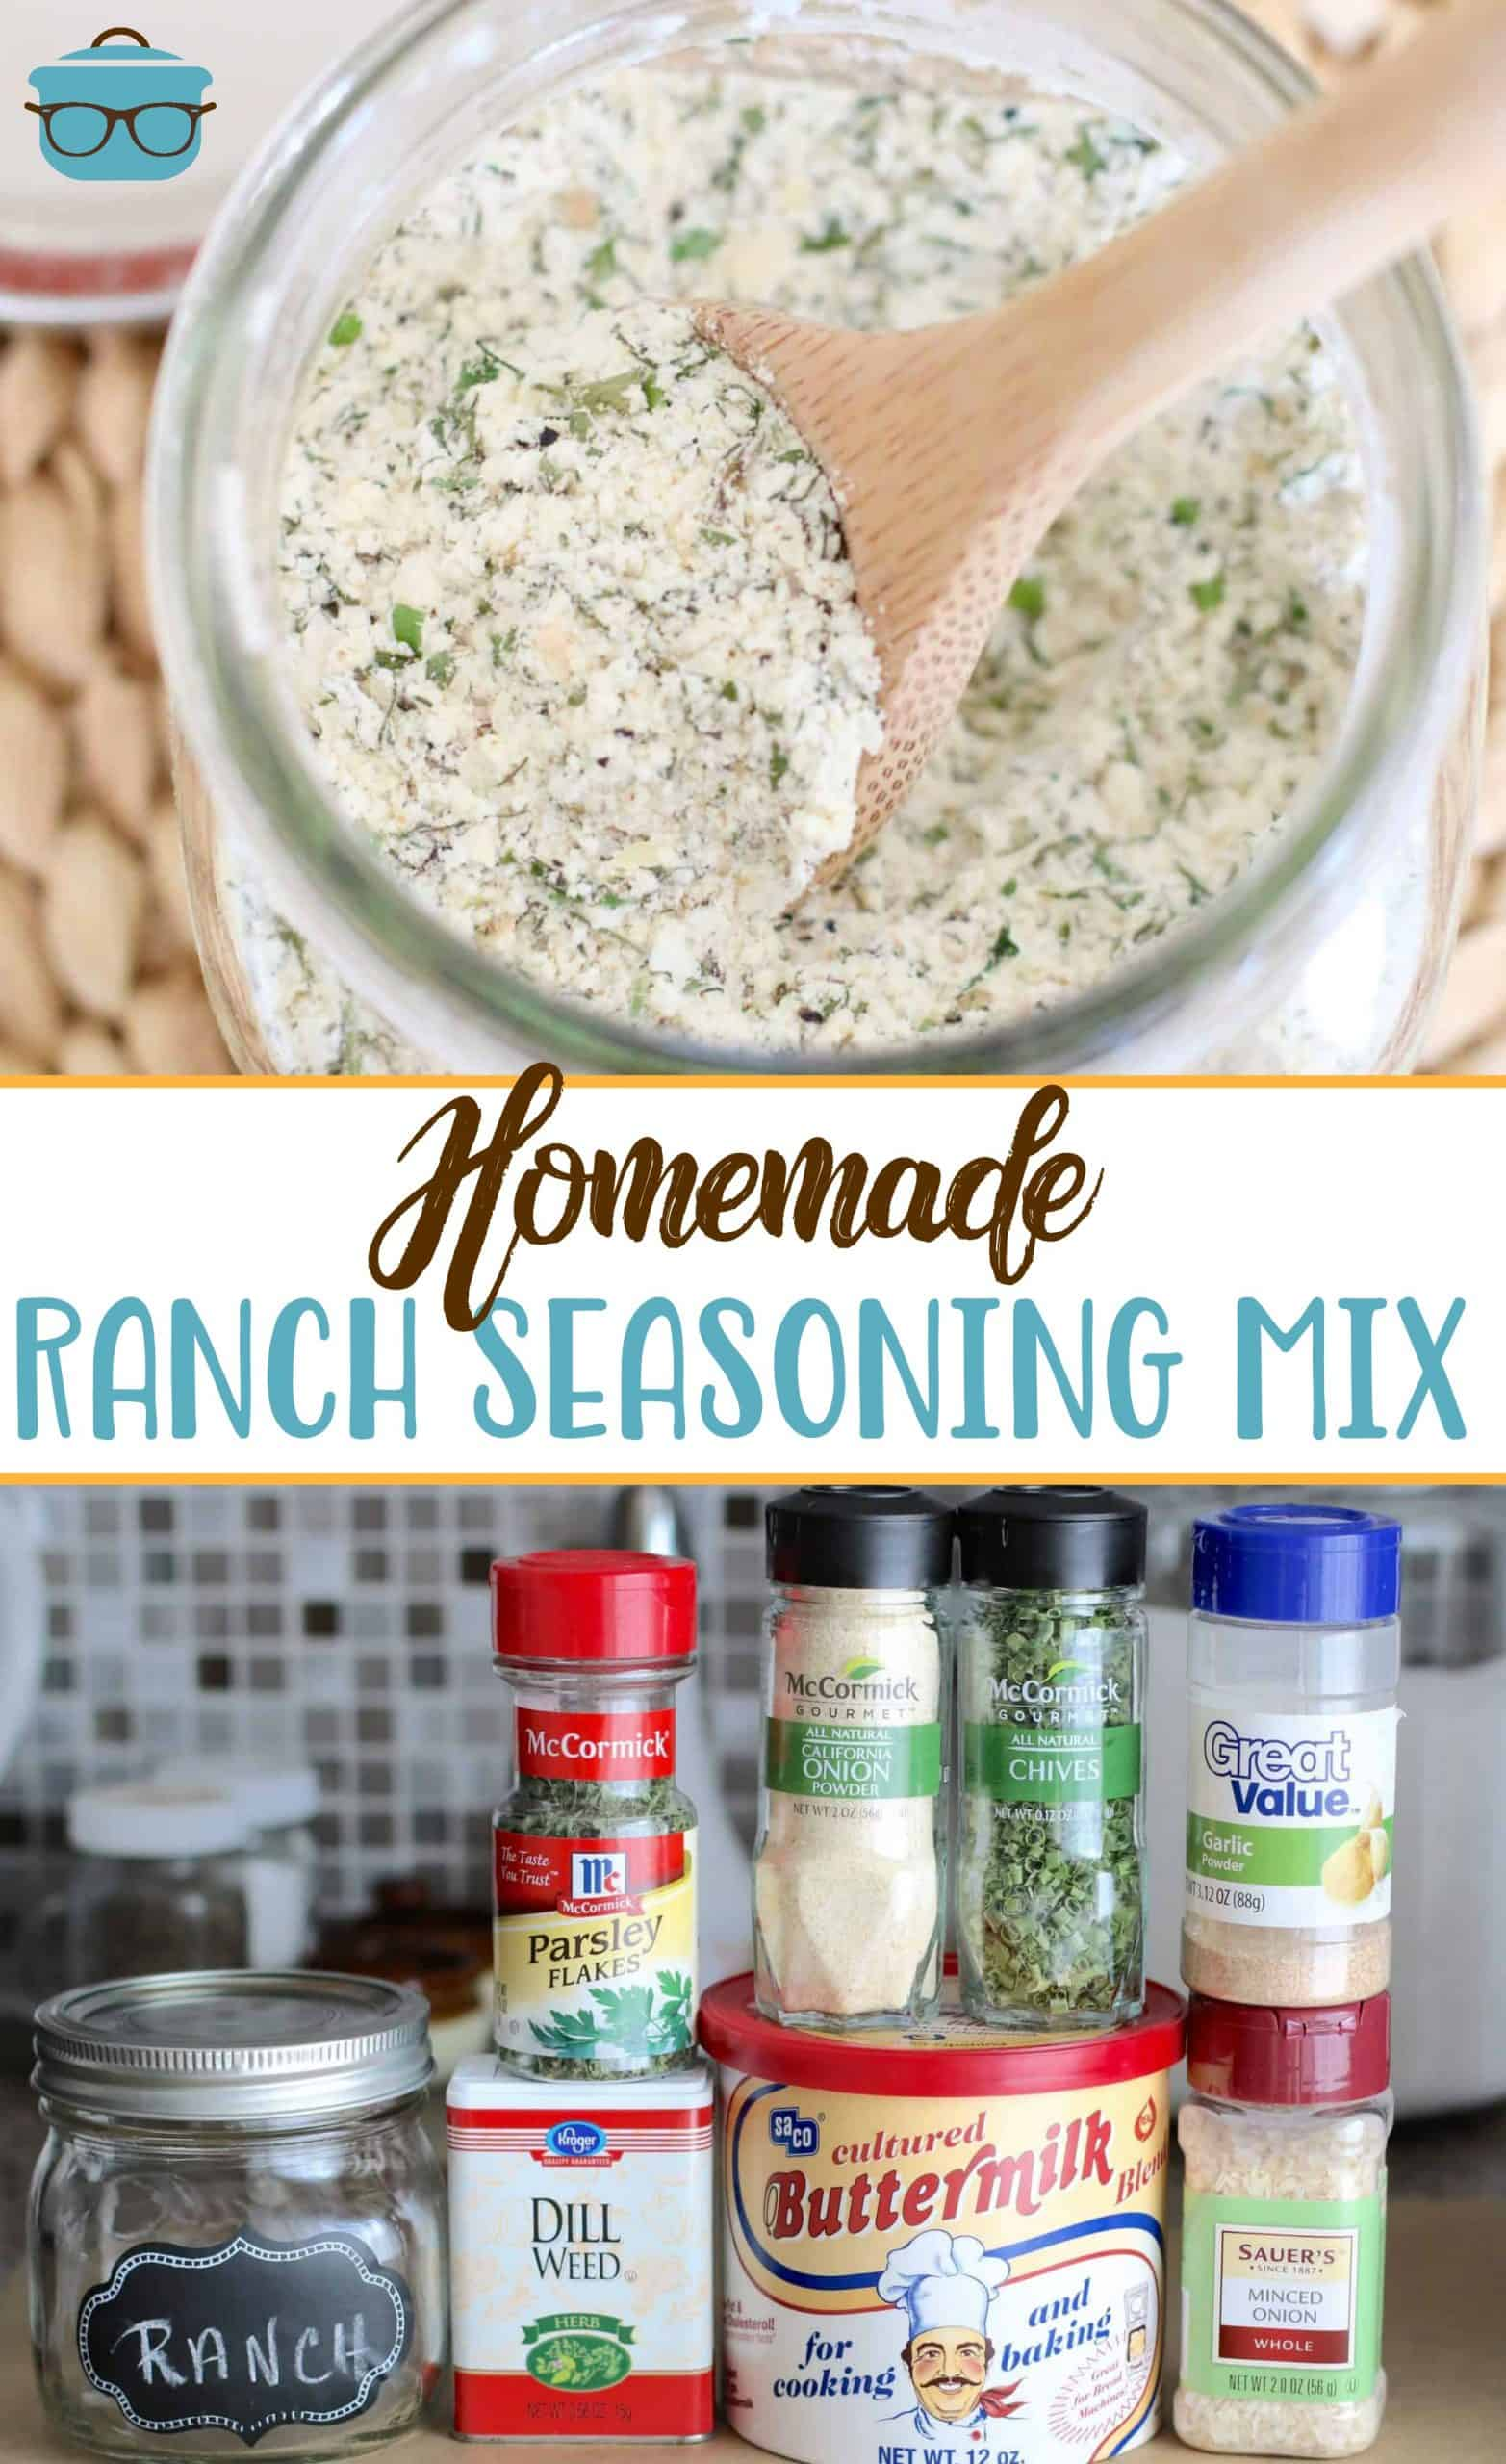 Homemade Ranch Dressing Mix is a dry powder mix that can be used to make salad dressing or as a seasoning in recipes.